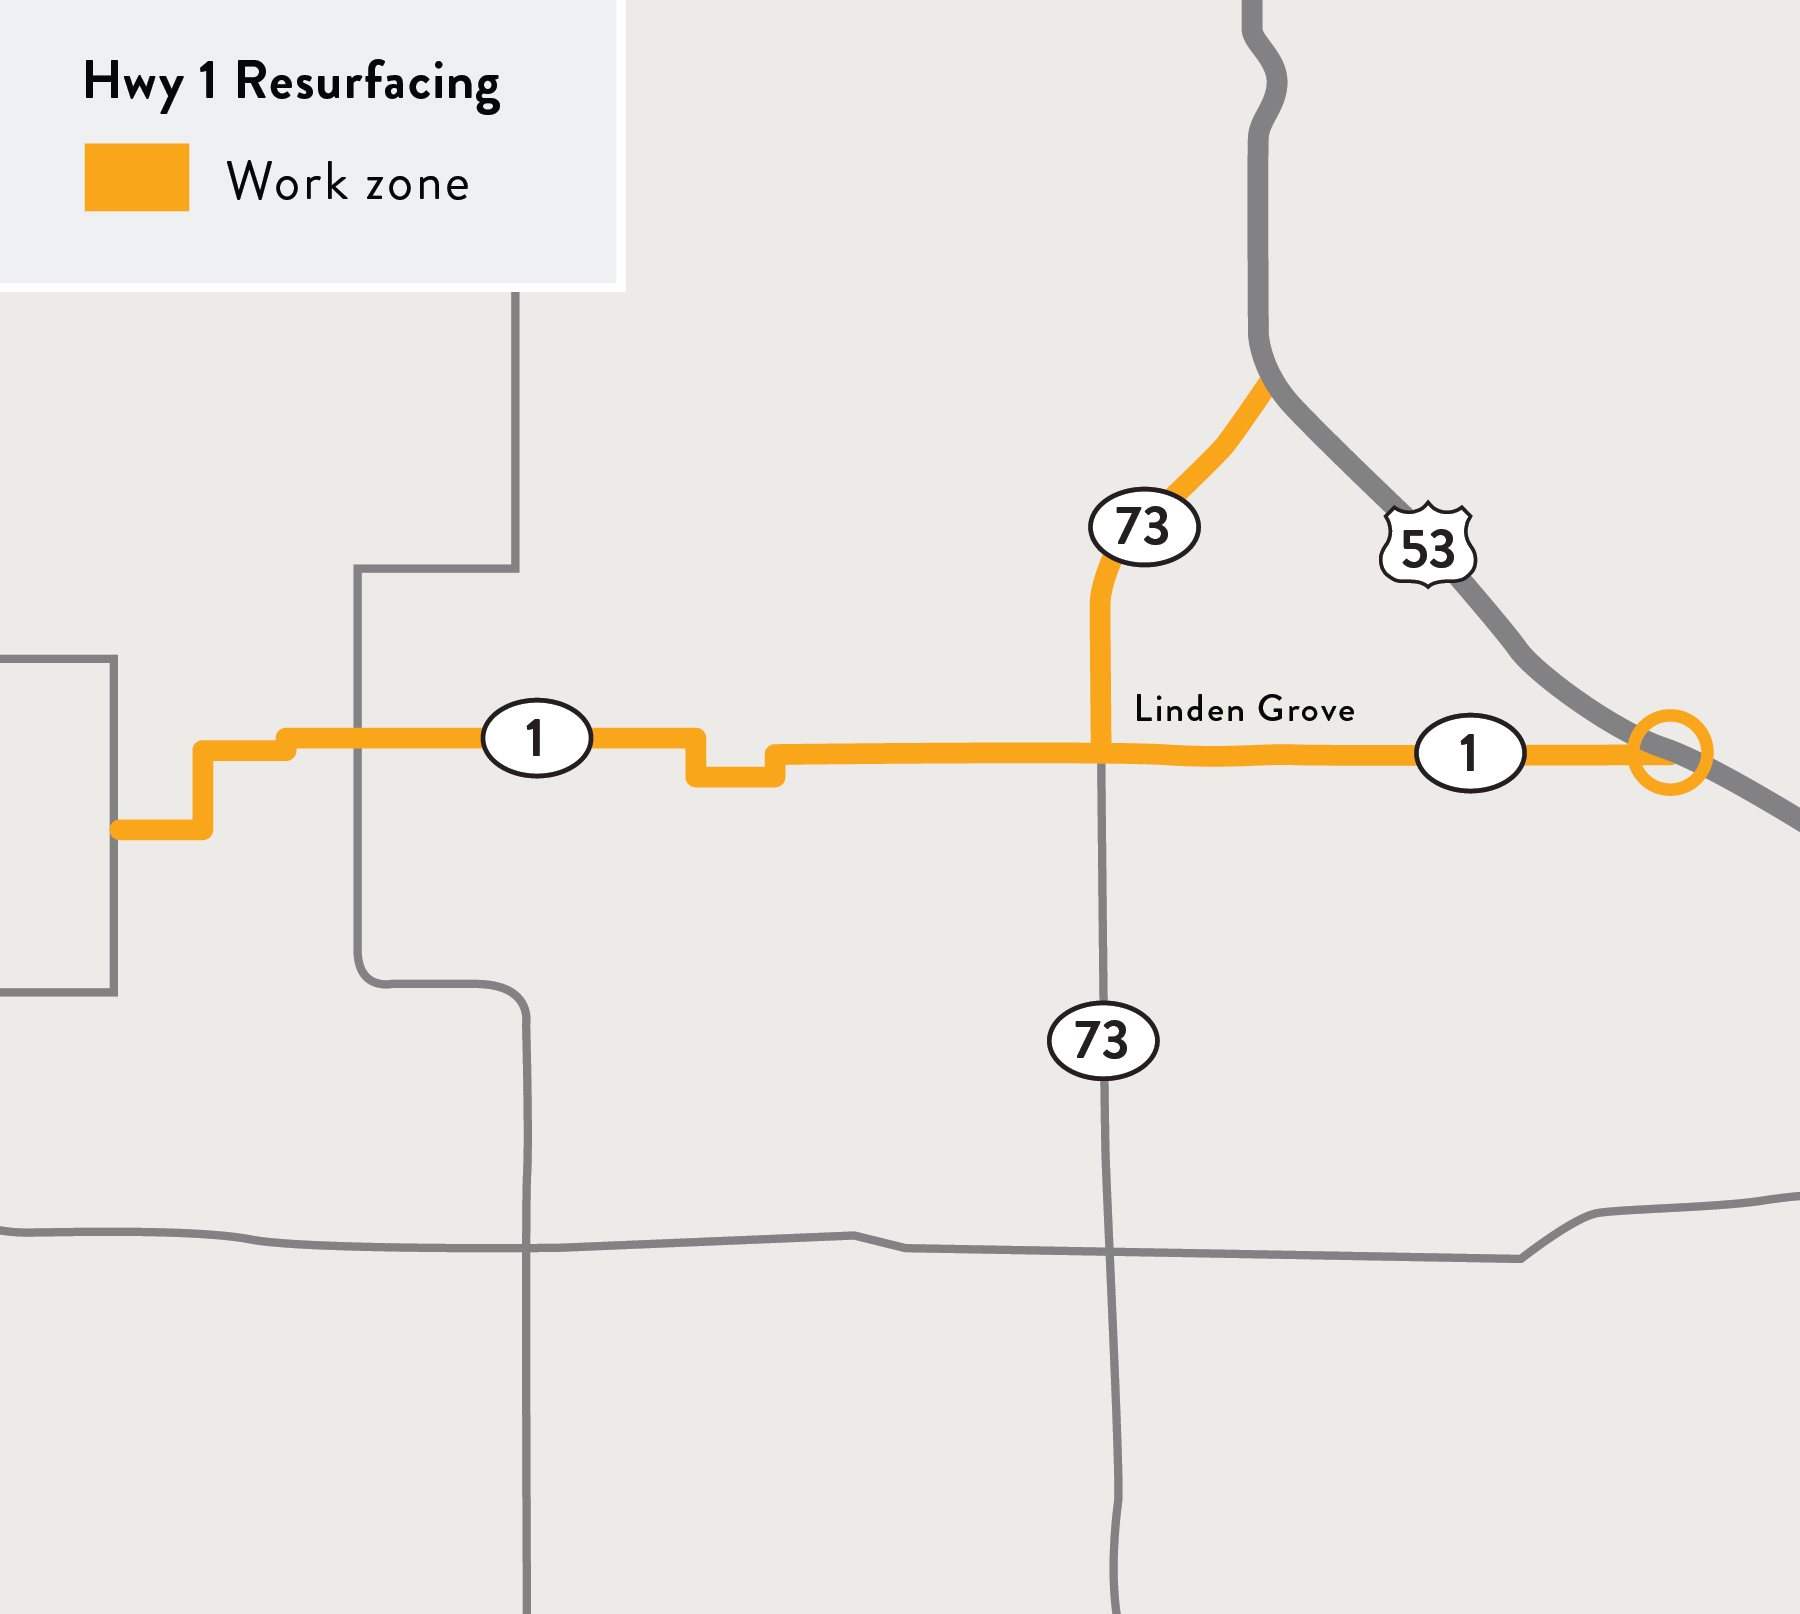 Hwy 1 Resurfacing project map